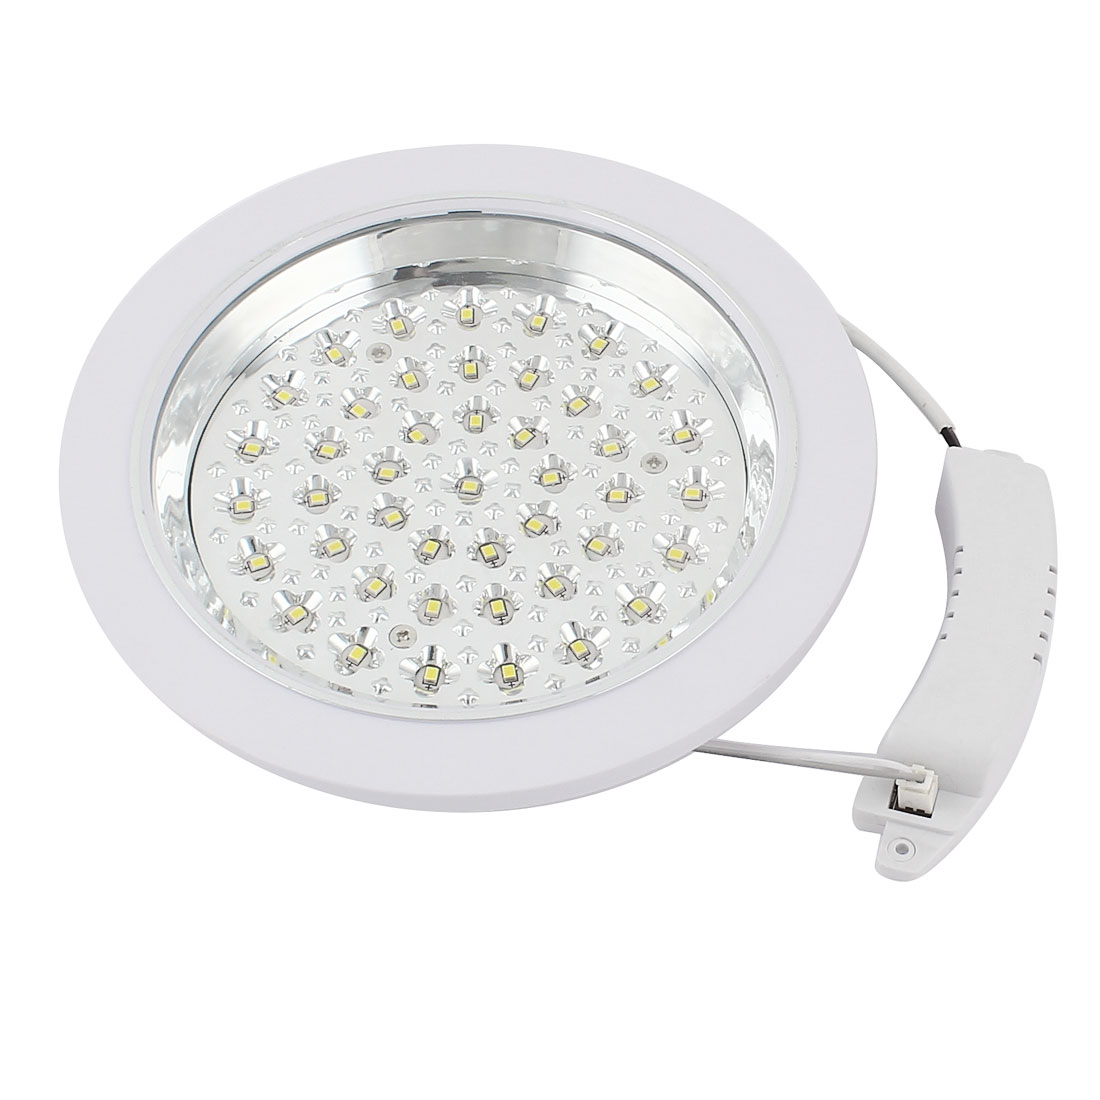 185mm Round Recessed Mount 54 LED White Downlight Ceiling Panel Lamp Bulb 4W AC 220V